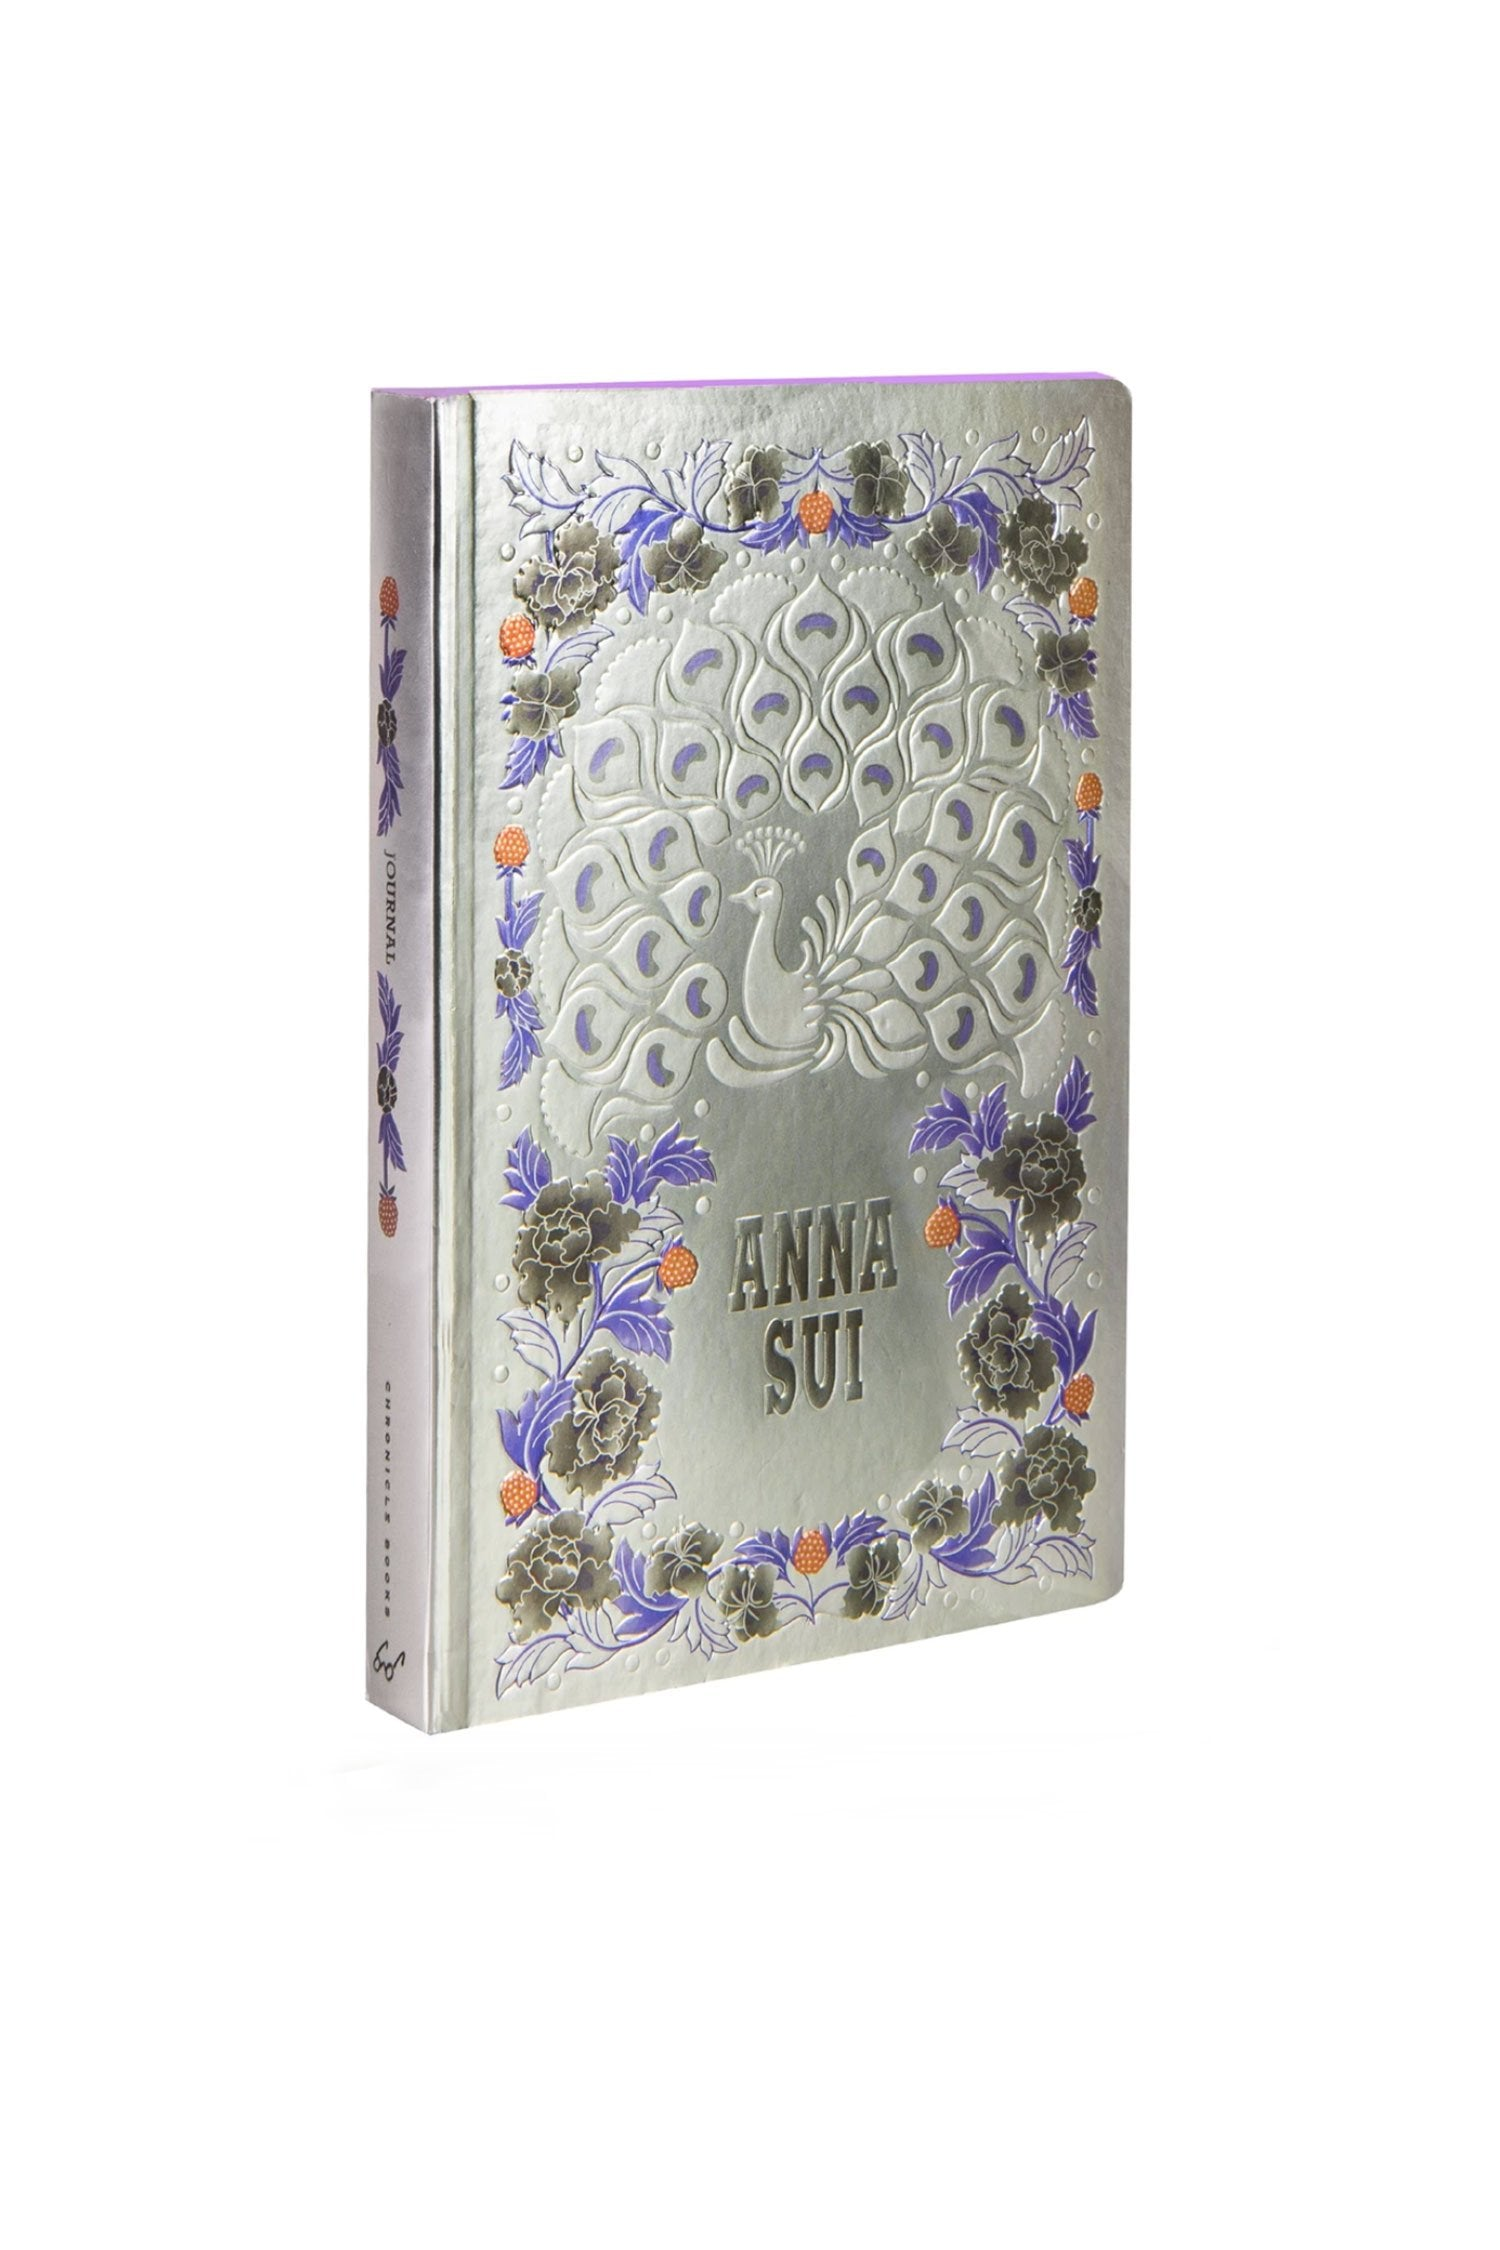 Flights of Fancy Silver Foil Journal - Anna Sui